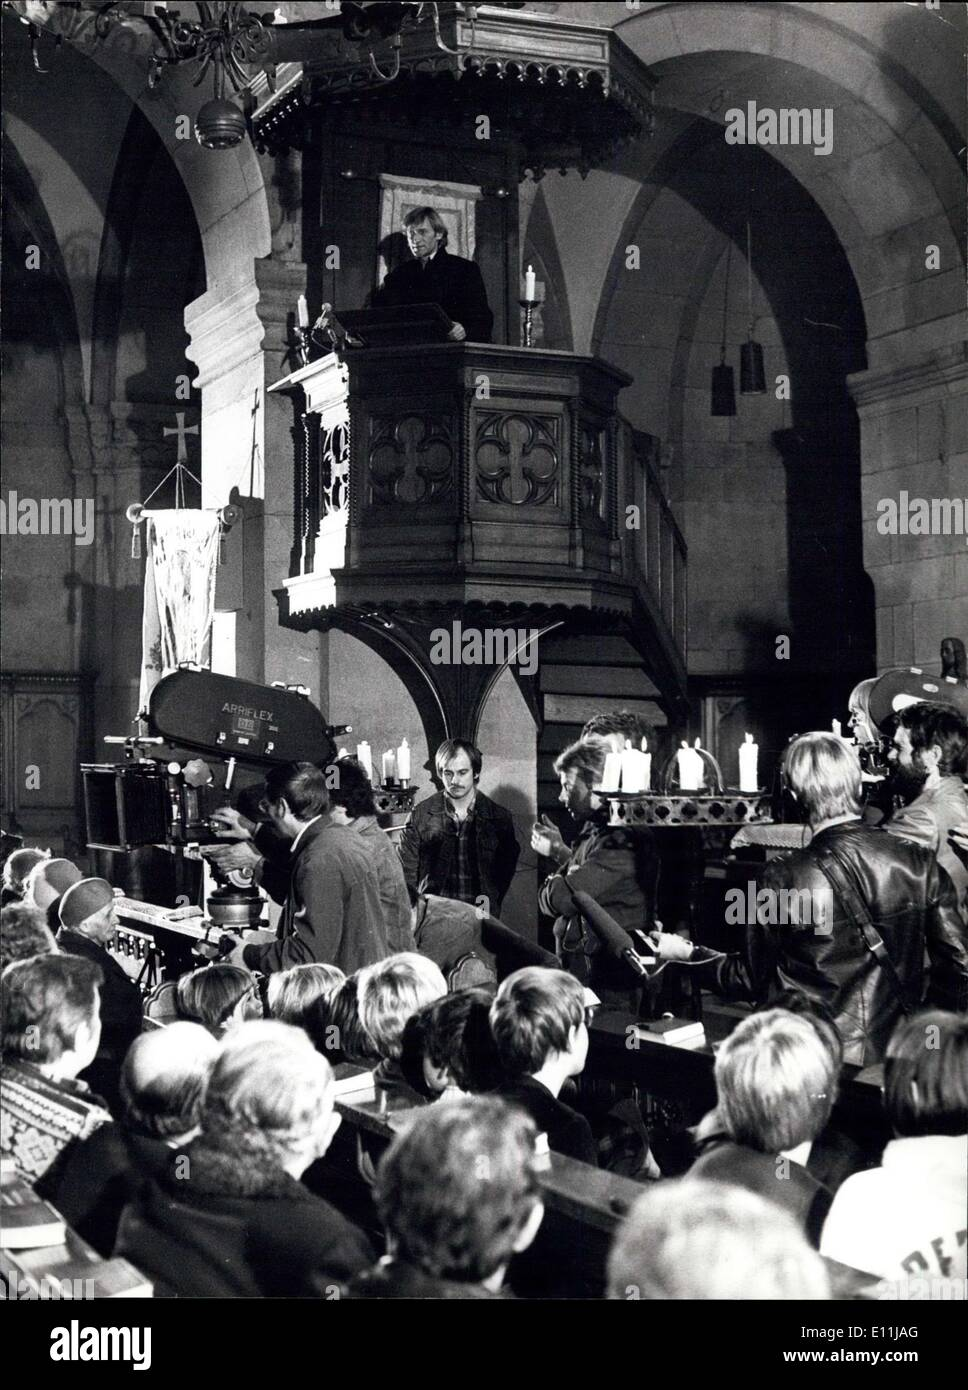 Apr. 06, 1978 - Swiss reformer Zwingli from 1500 in Zurich of today. Wednesday and Thursday at Zurich's famous Fraumunster-church, where swiss reformer Ulrich Zwingli once helt his sermons there was Zwingli again on the pulpit. Zwingli is given by the actor Mathias Harich(on the pulpit) in filming the novel ''Ursula''by famous swiss author Gottfried Keller. The film. directed by Egon Gunther (GDR) , is a vo-production of swiss and GDR-TV. - Stock Image